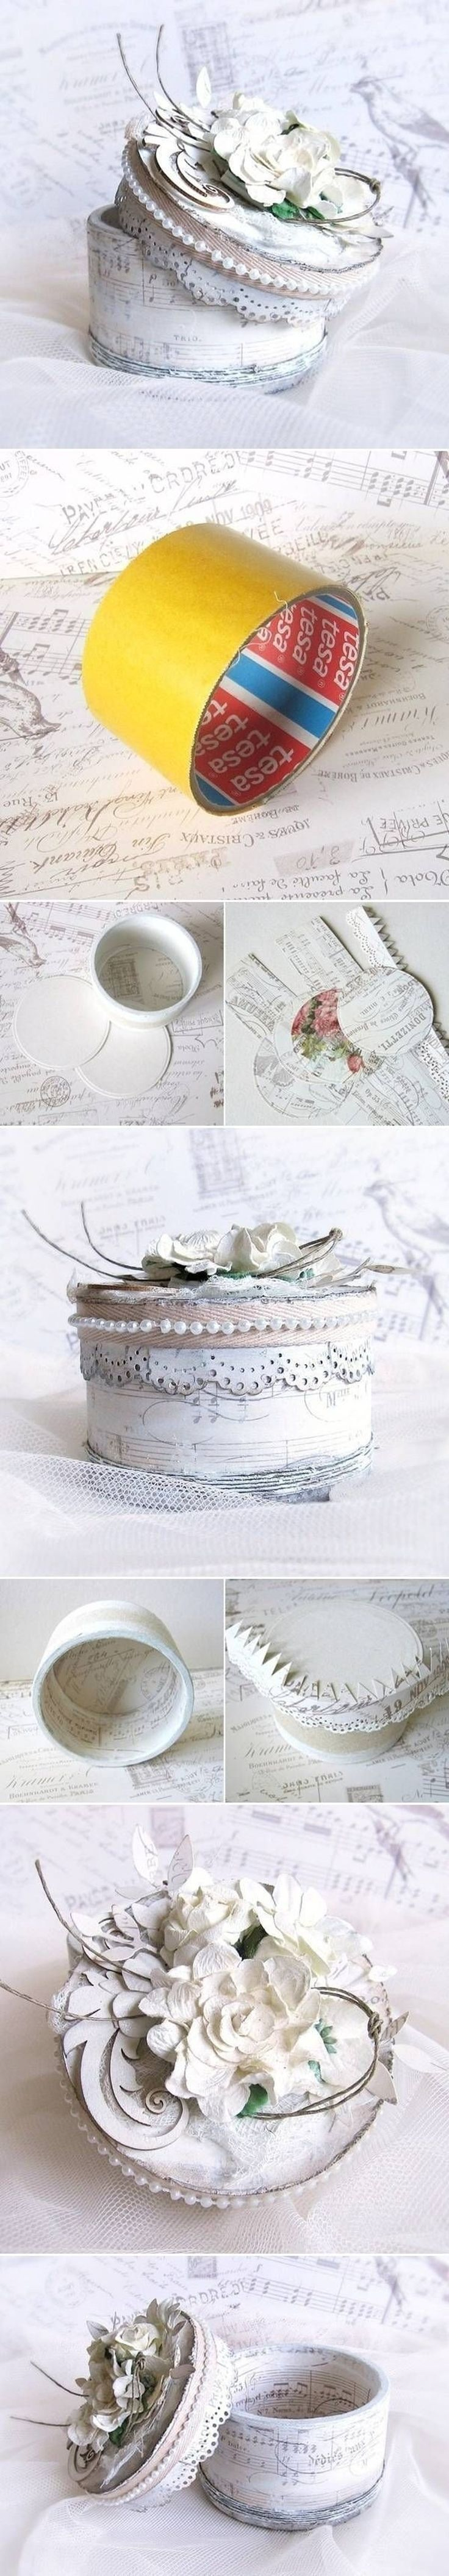 24. DIY Tape Roll #Jewelry Box - 27 DIY Trinket #Boxes to Keep Your Bling #Organized ... → DIY #Trinket